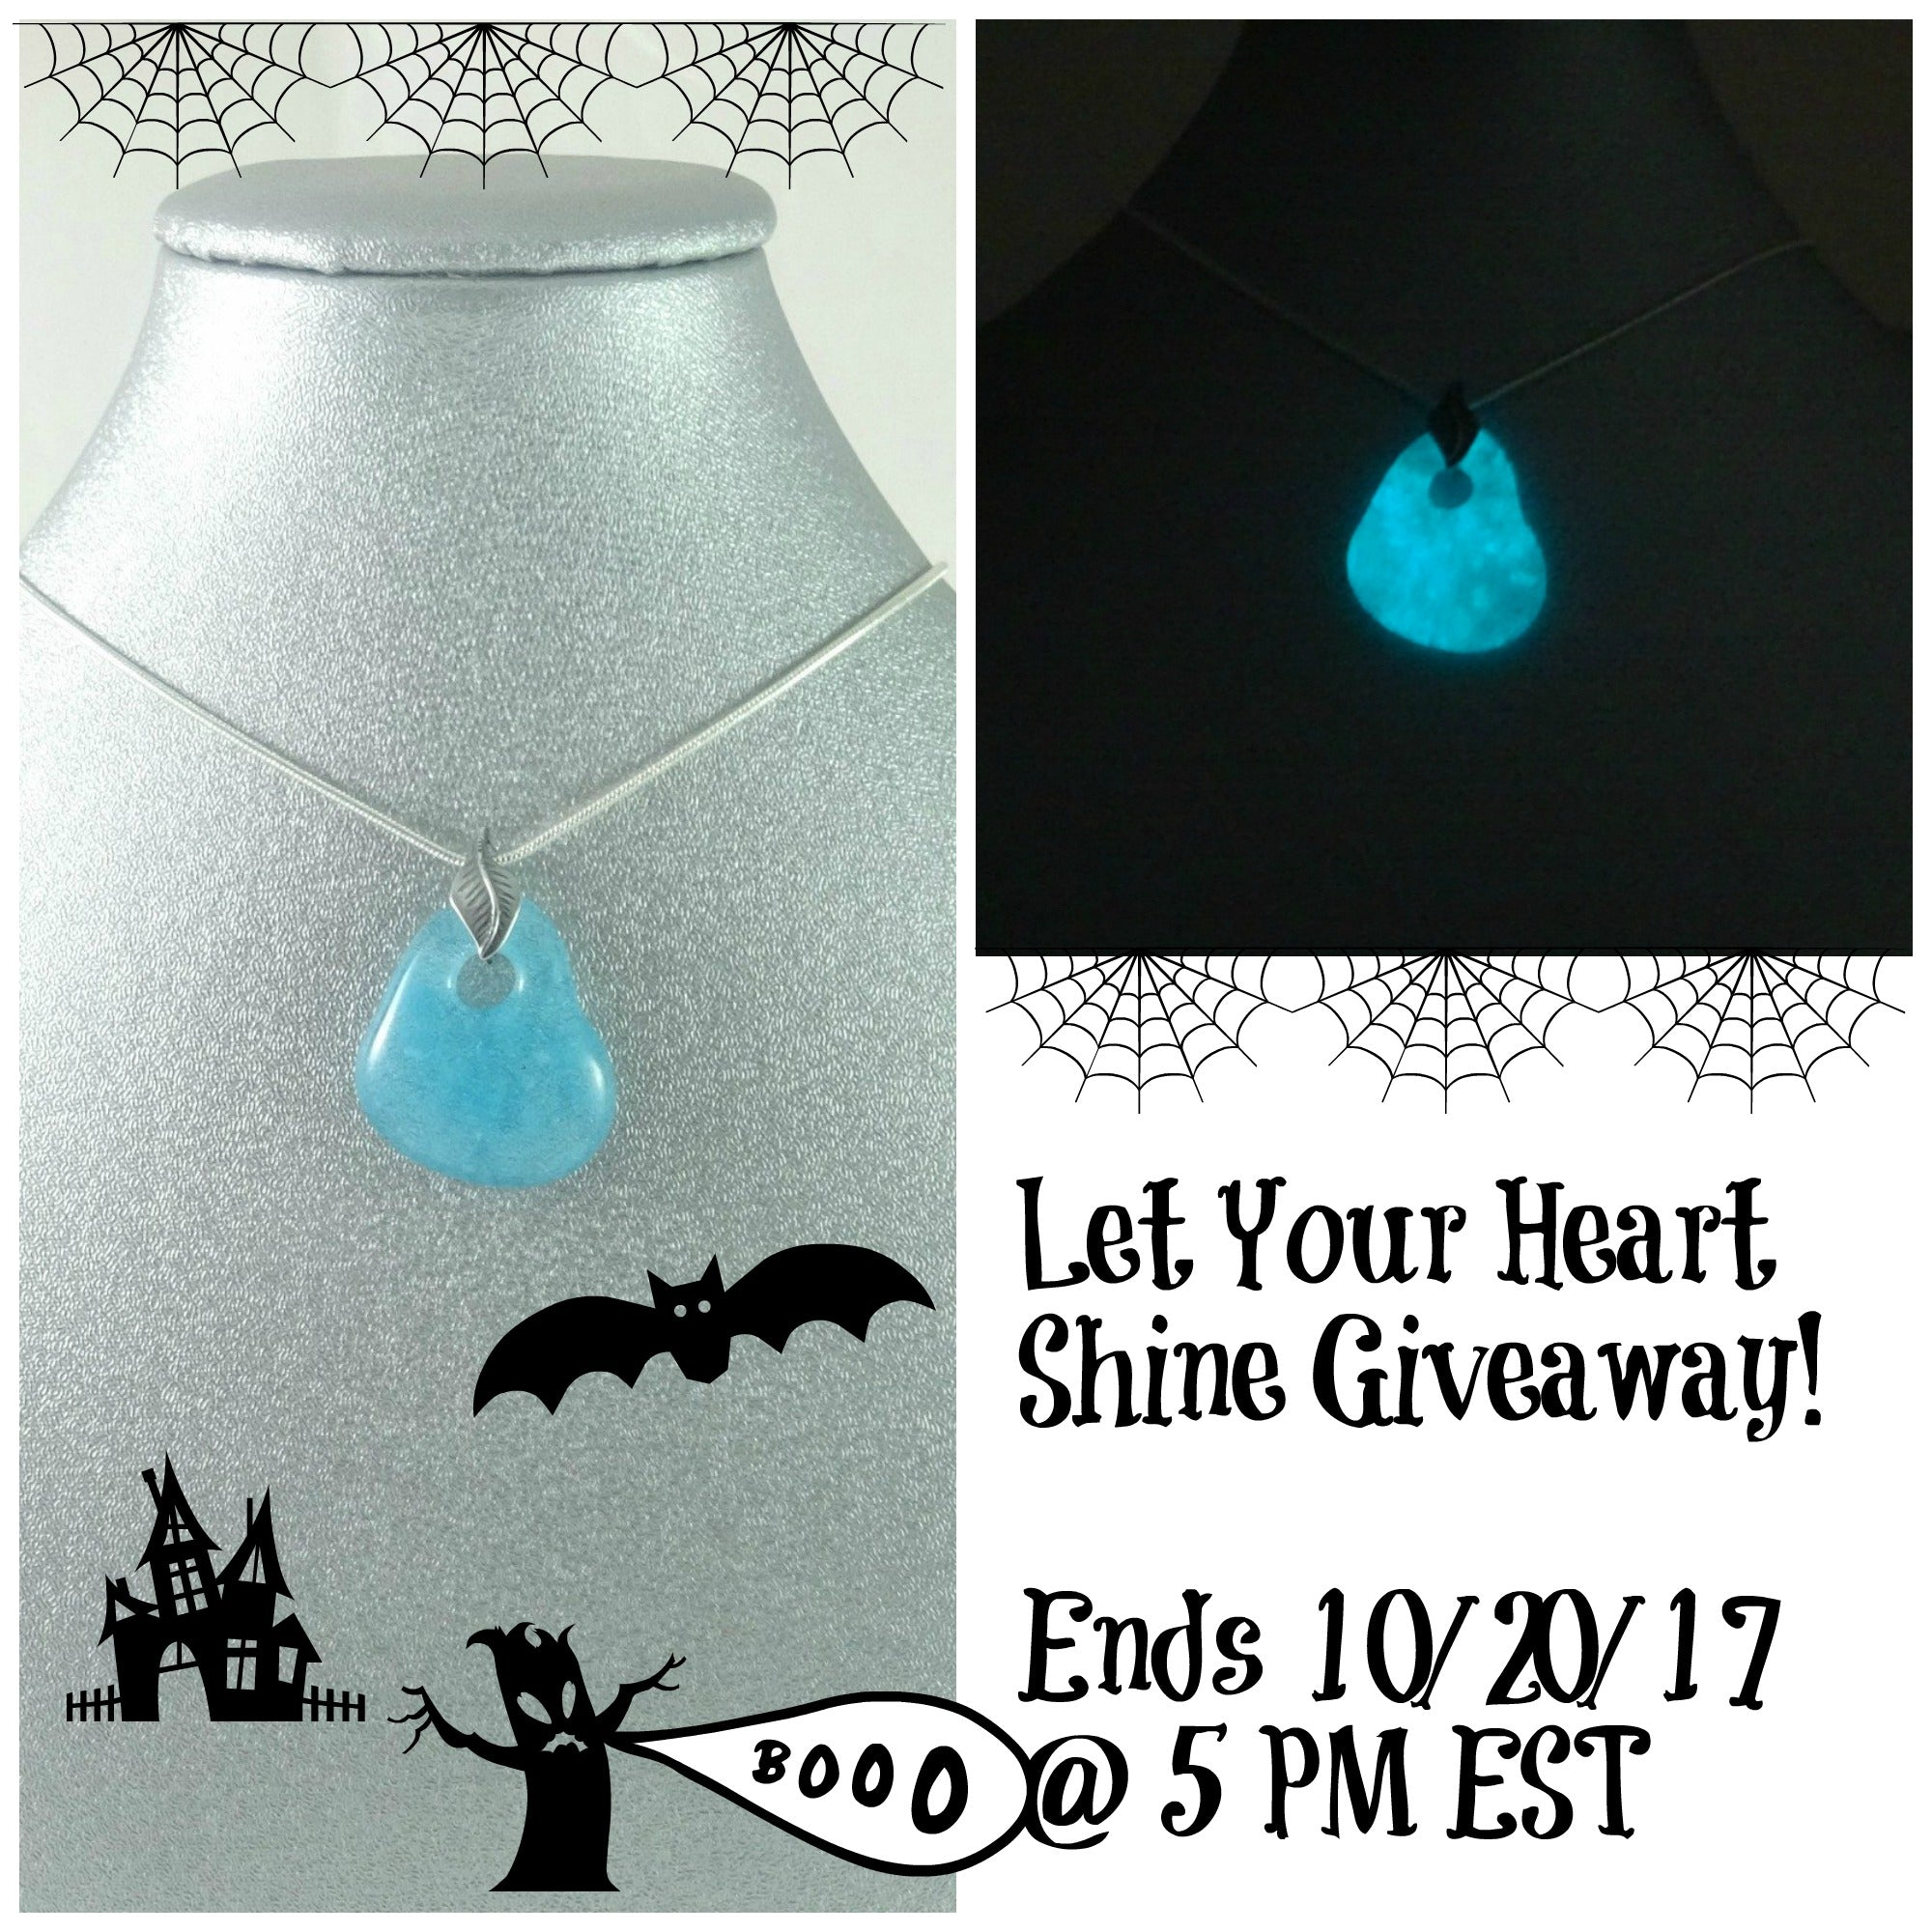 Let Your Heart Shine Giveaway!